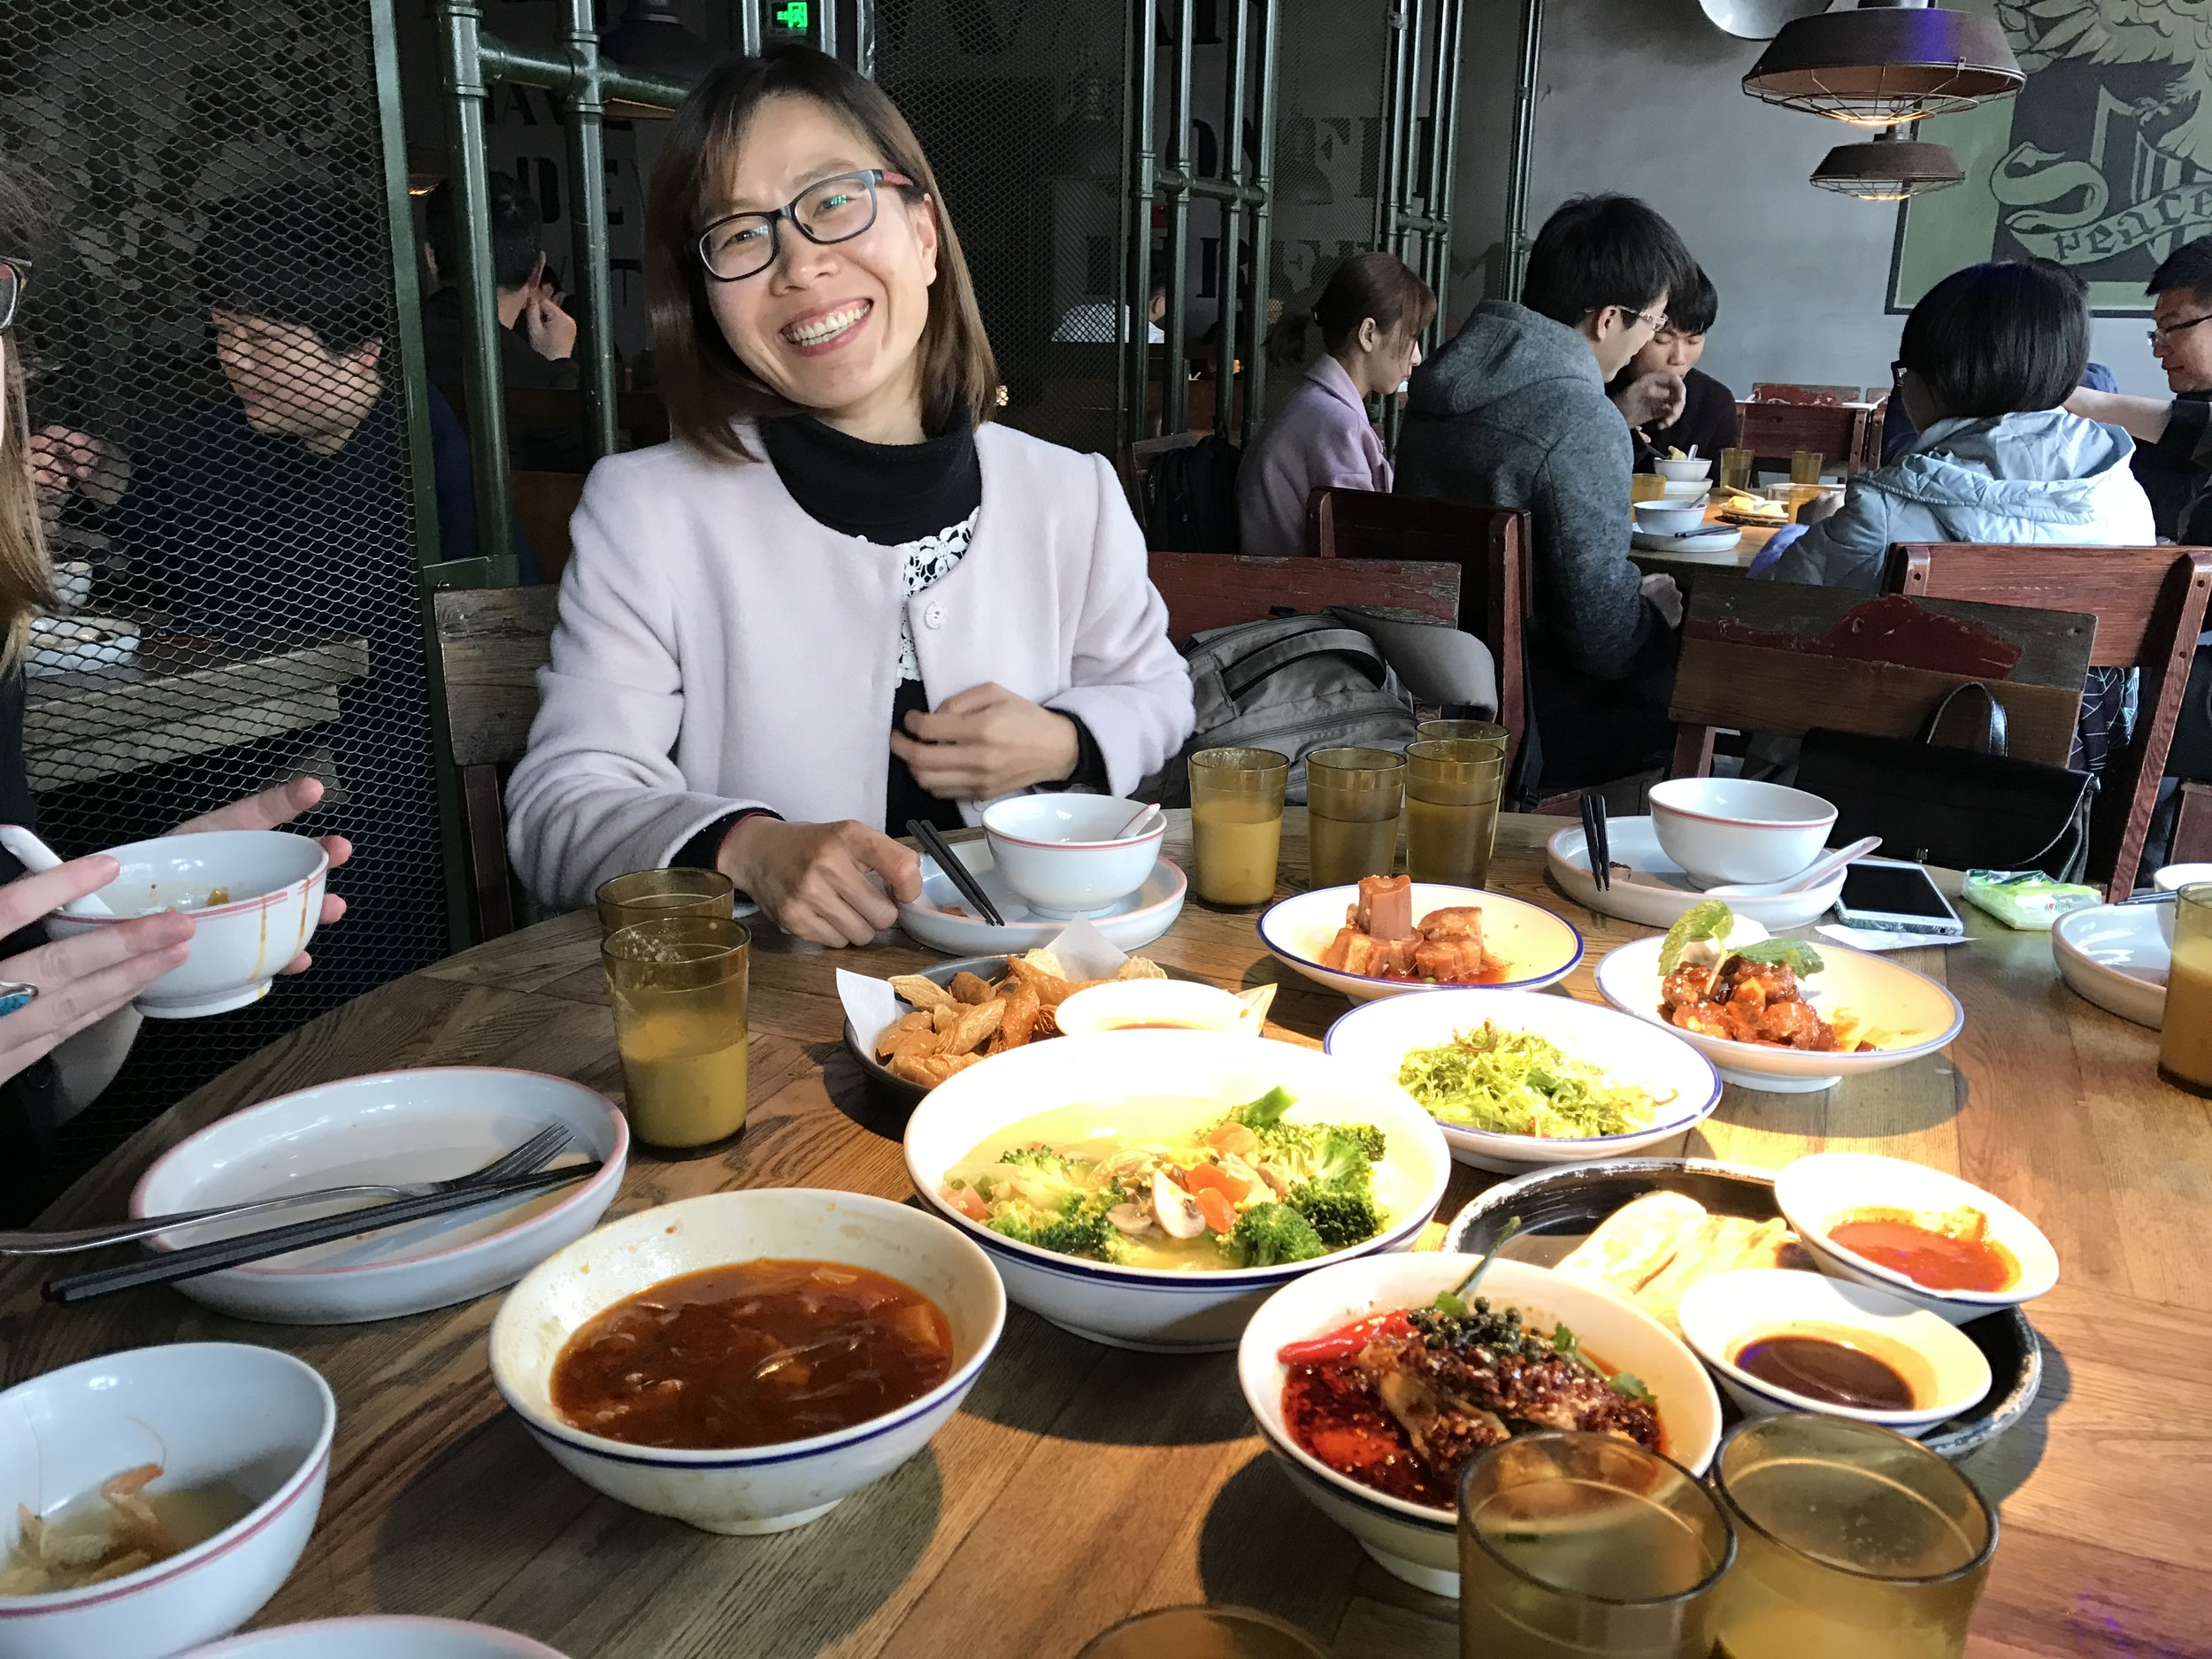 Dr. Fengling Ma, our collaborator at Zhejiang Sci-Tech University, graciously treated us to authentic dishes common to Hangzhou, China.